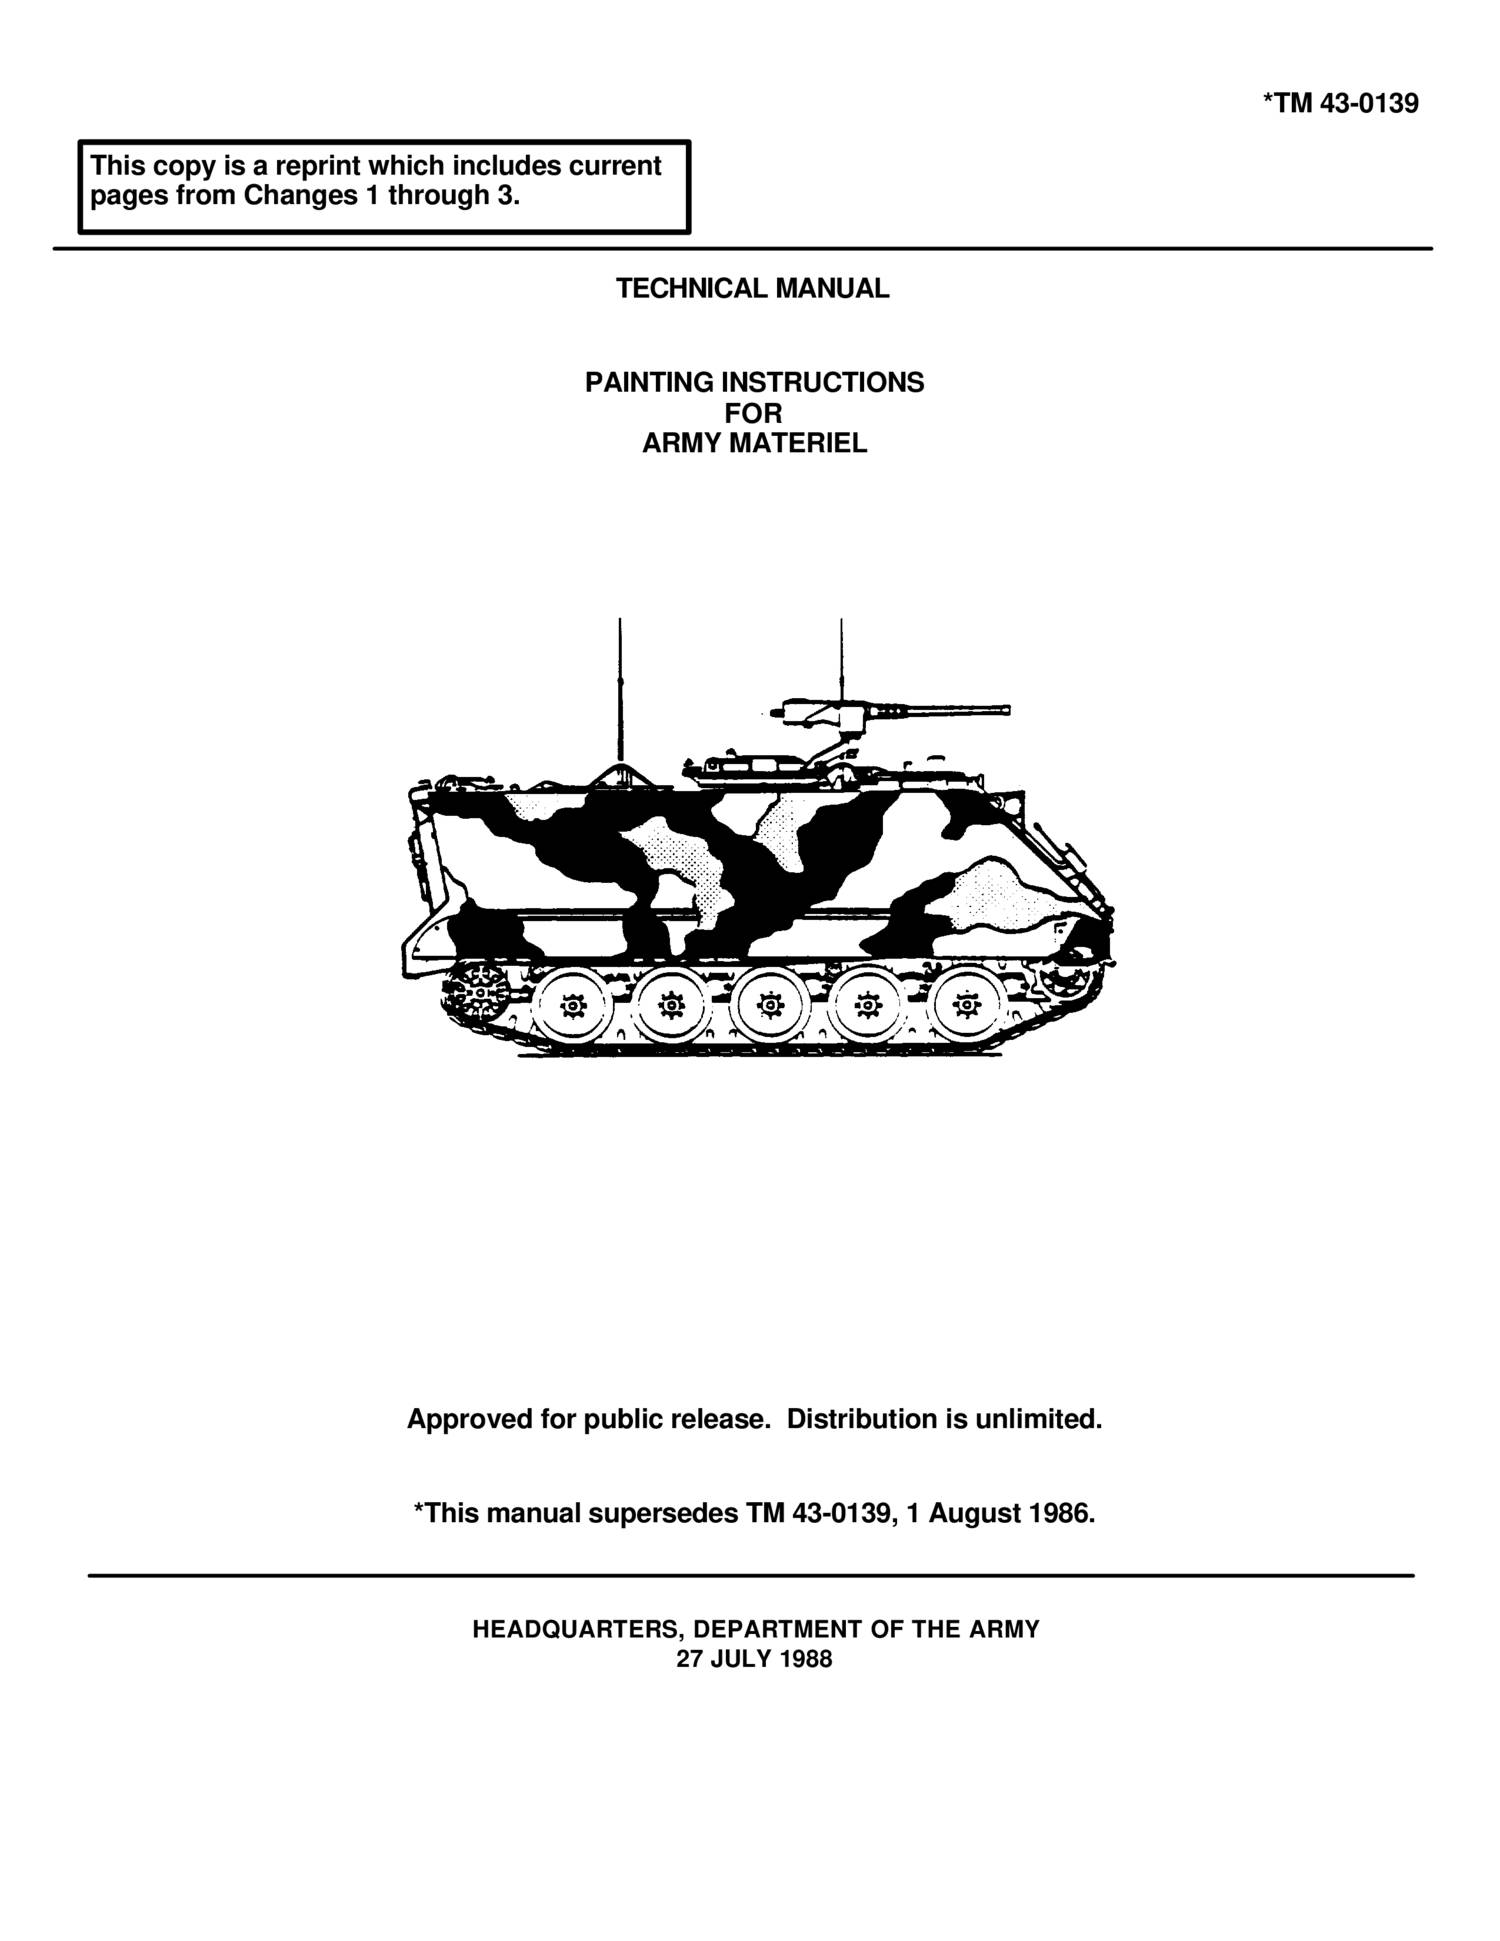 Army Materiel Painting Instructions.pdf   DocDroid